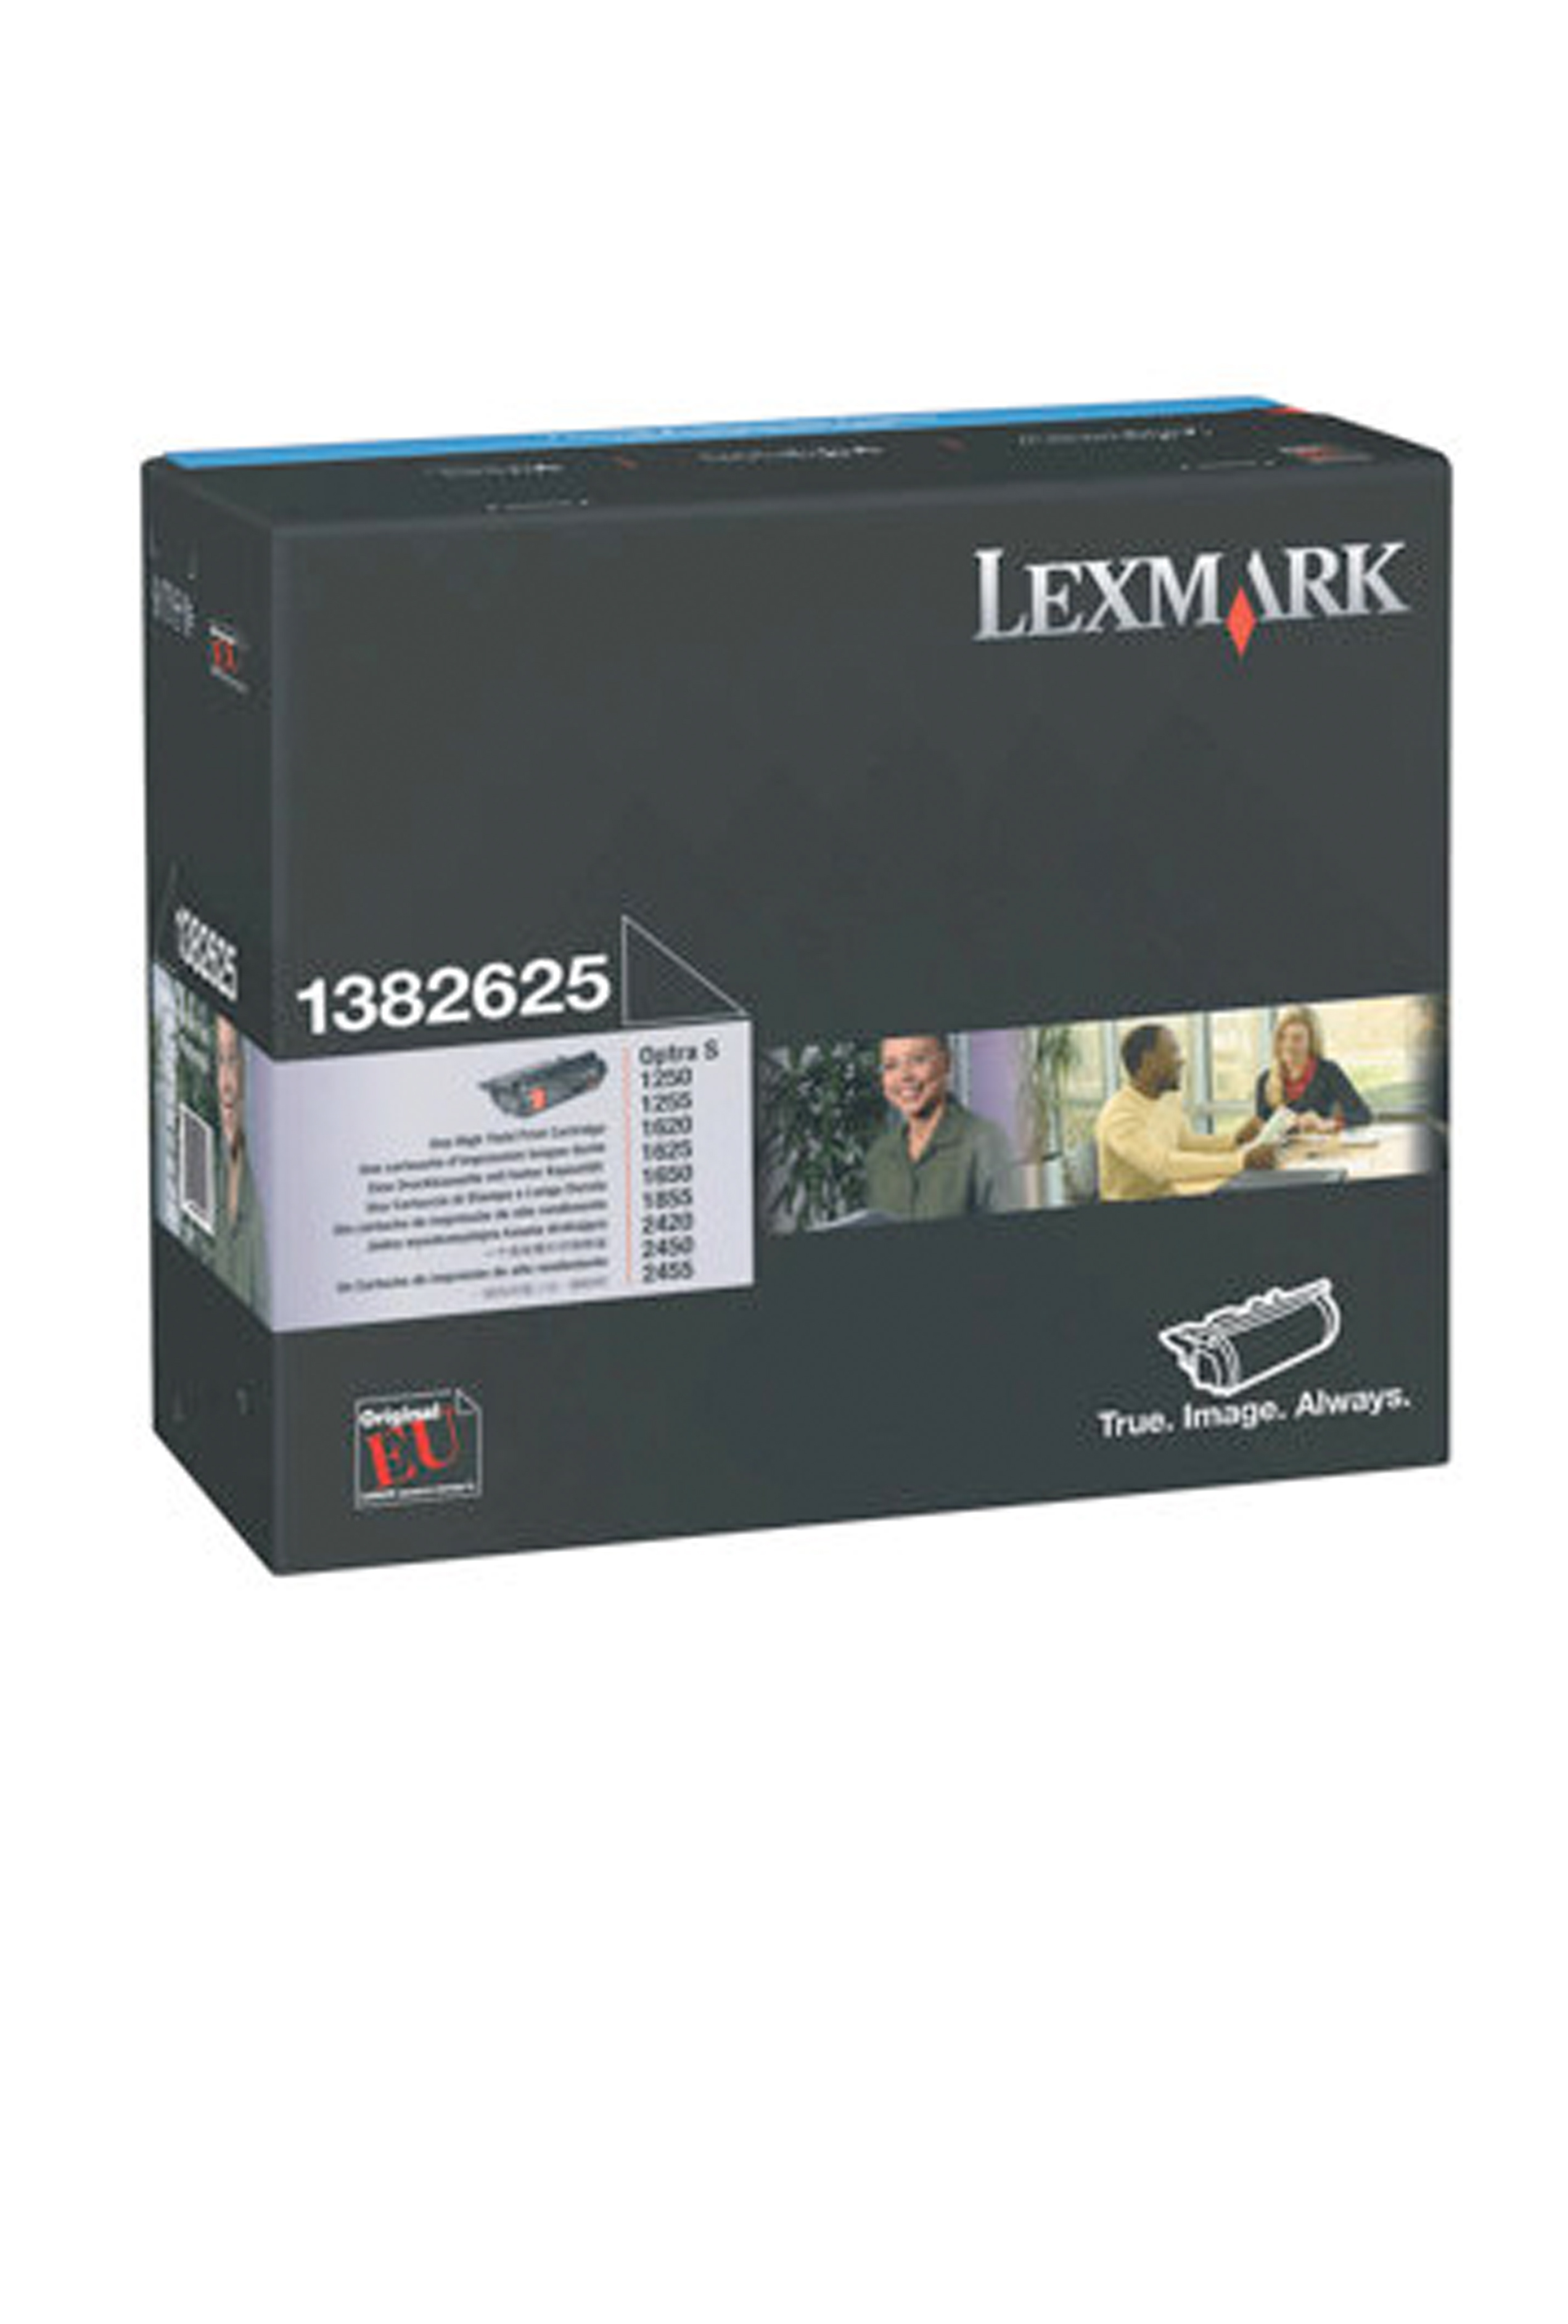 Lexmark LEXMARK OPTRA S 17.6K @5% REGULAR CARTRIDGE (1382625)